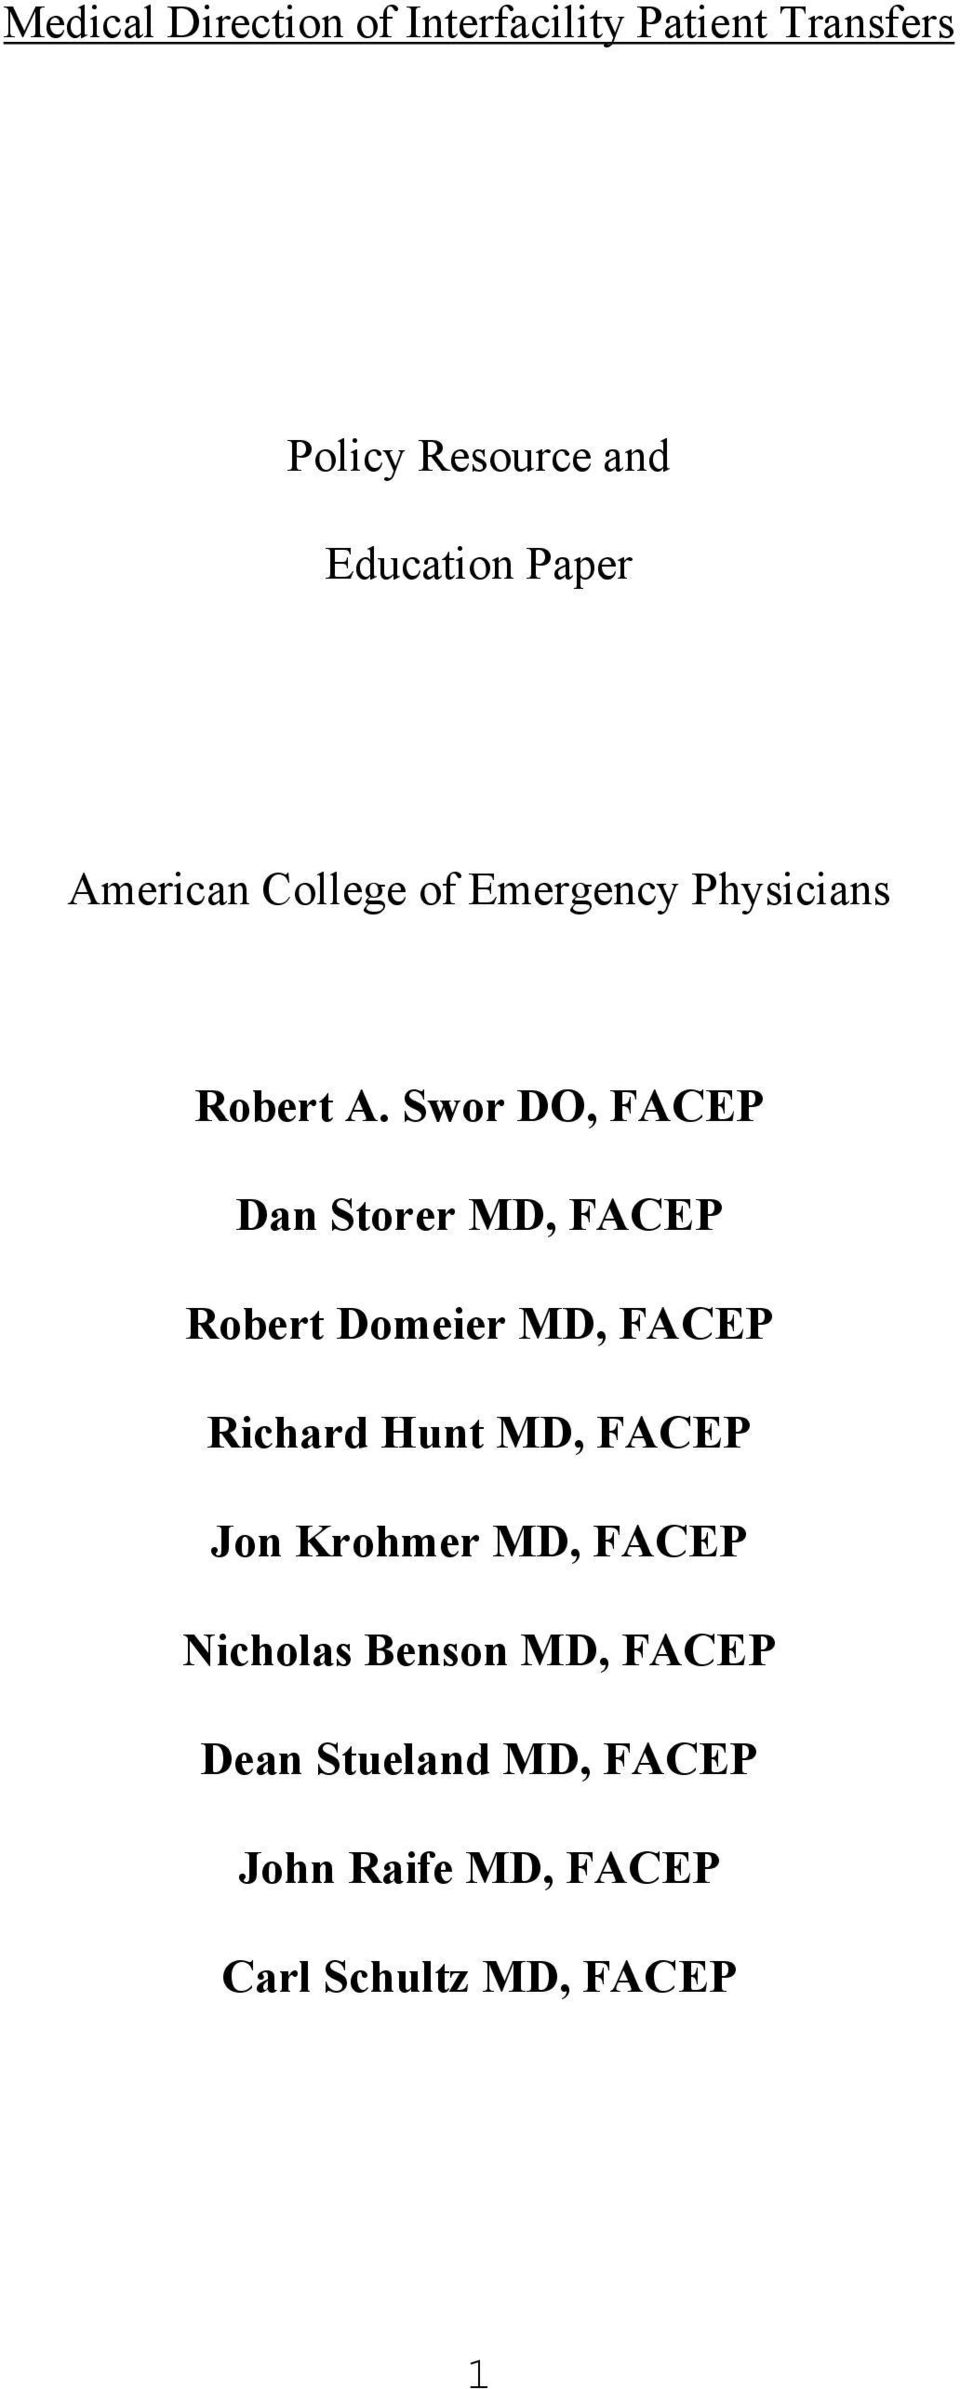 Swor DO, FACEP Dan Storer MD, FACEP Robert Domeier MD, FACEP Richard Hunt MD, FACEP